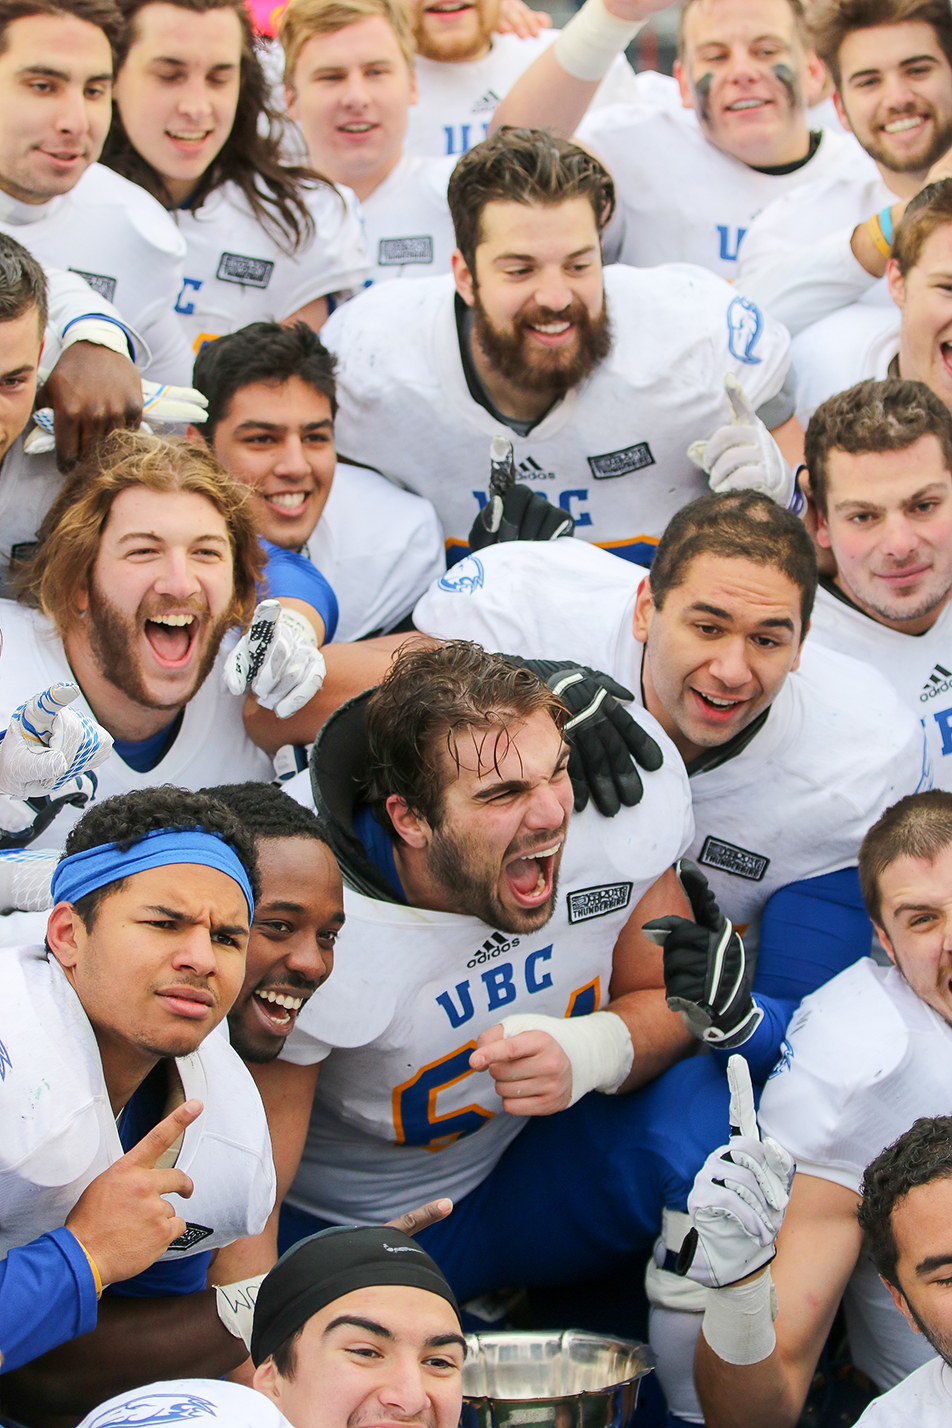 UBC Celebrates: Members of the UBC Thunderbirds celebrate their win over the U of C Dinos to take the Hardy Cup between at McMahon Stadium on Saturday, Nov. 14, 2015. The final score was 31-26 for the Thunderbirds. (Photo by Kyle Meller/The Press)